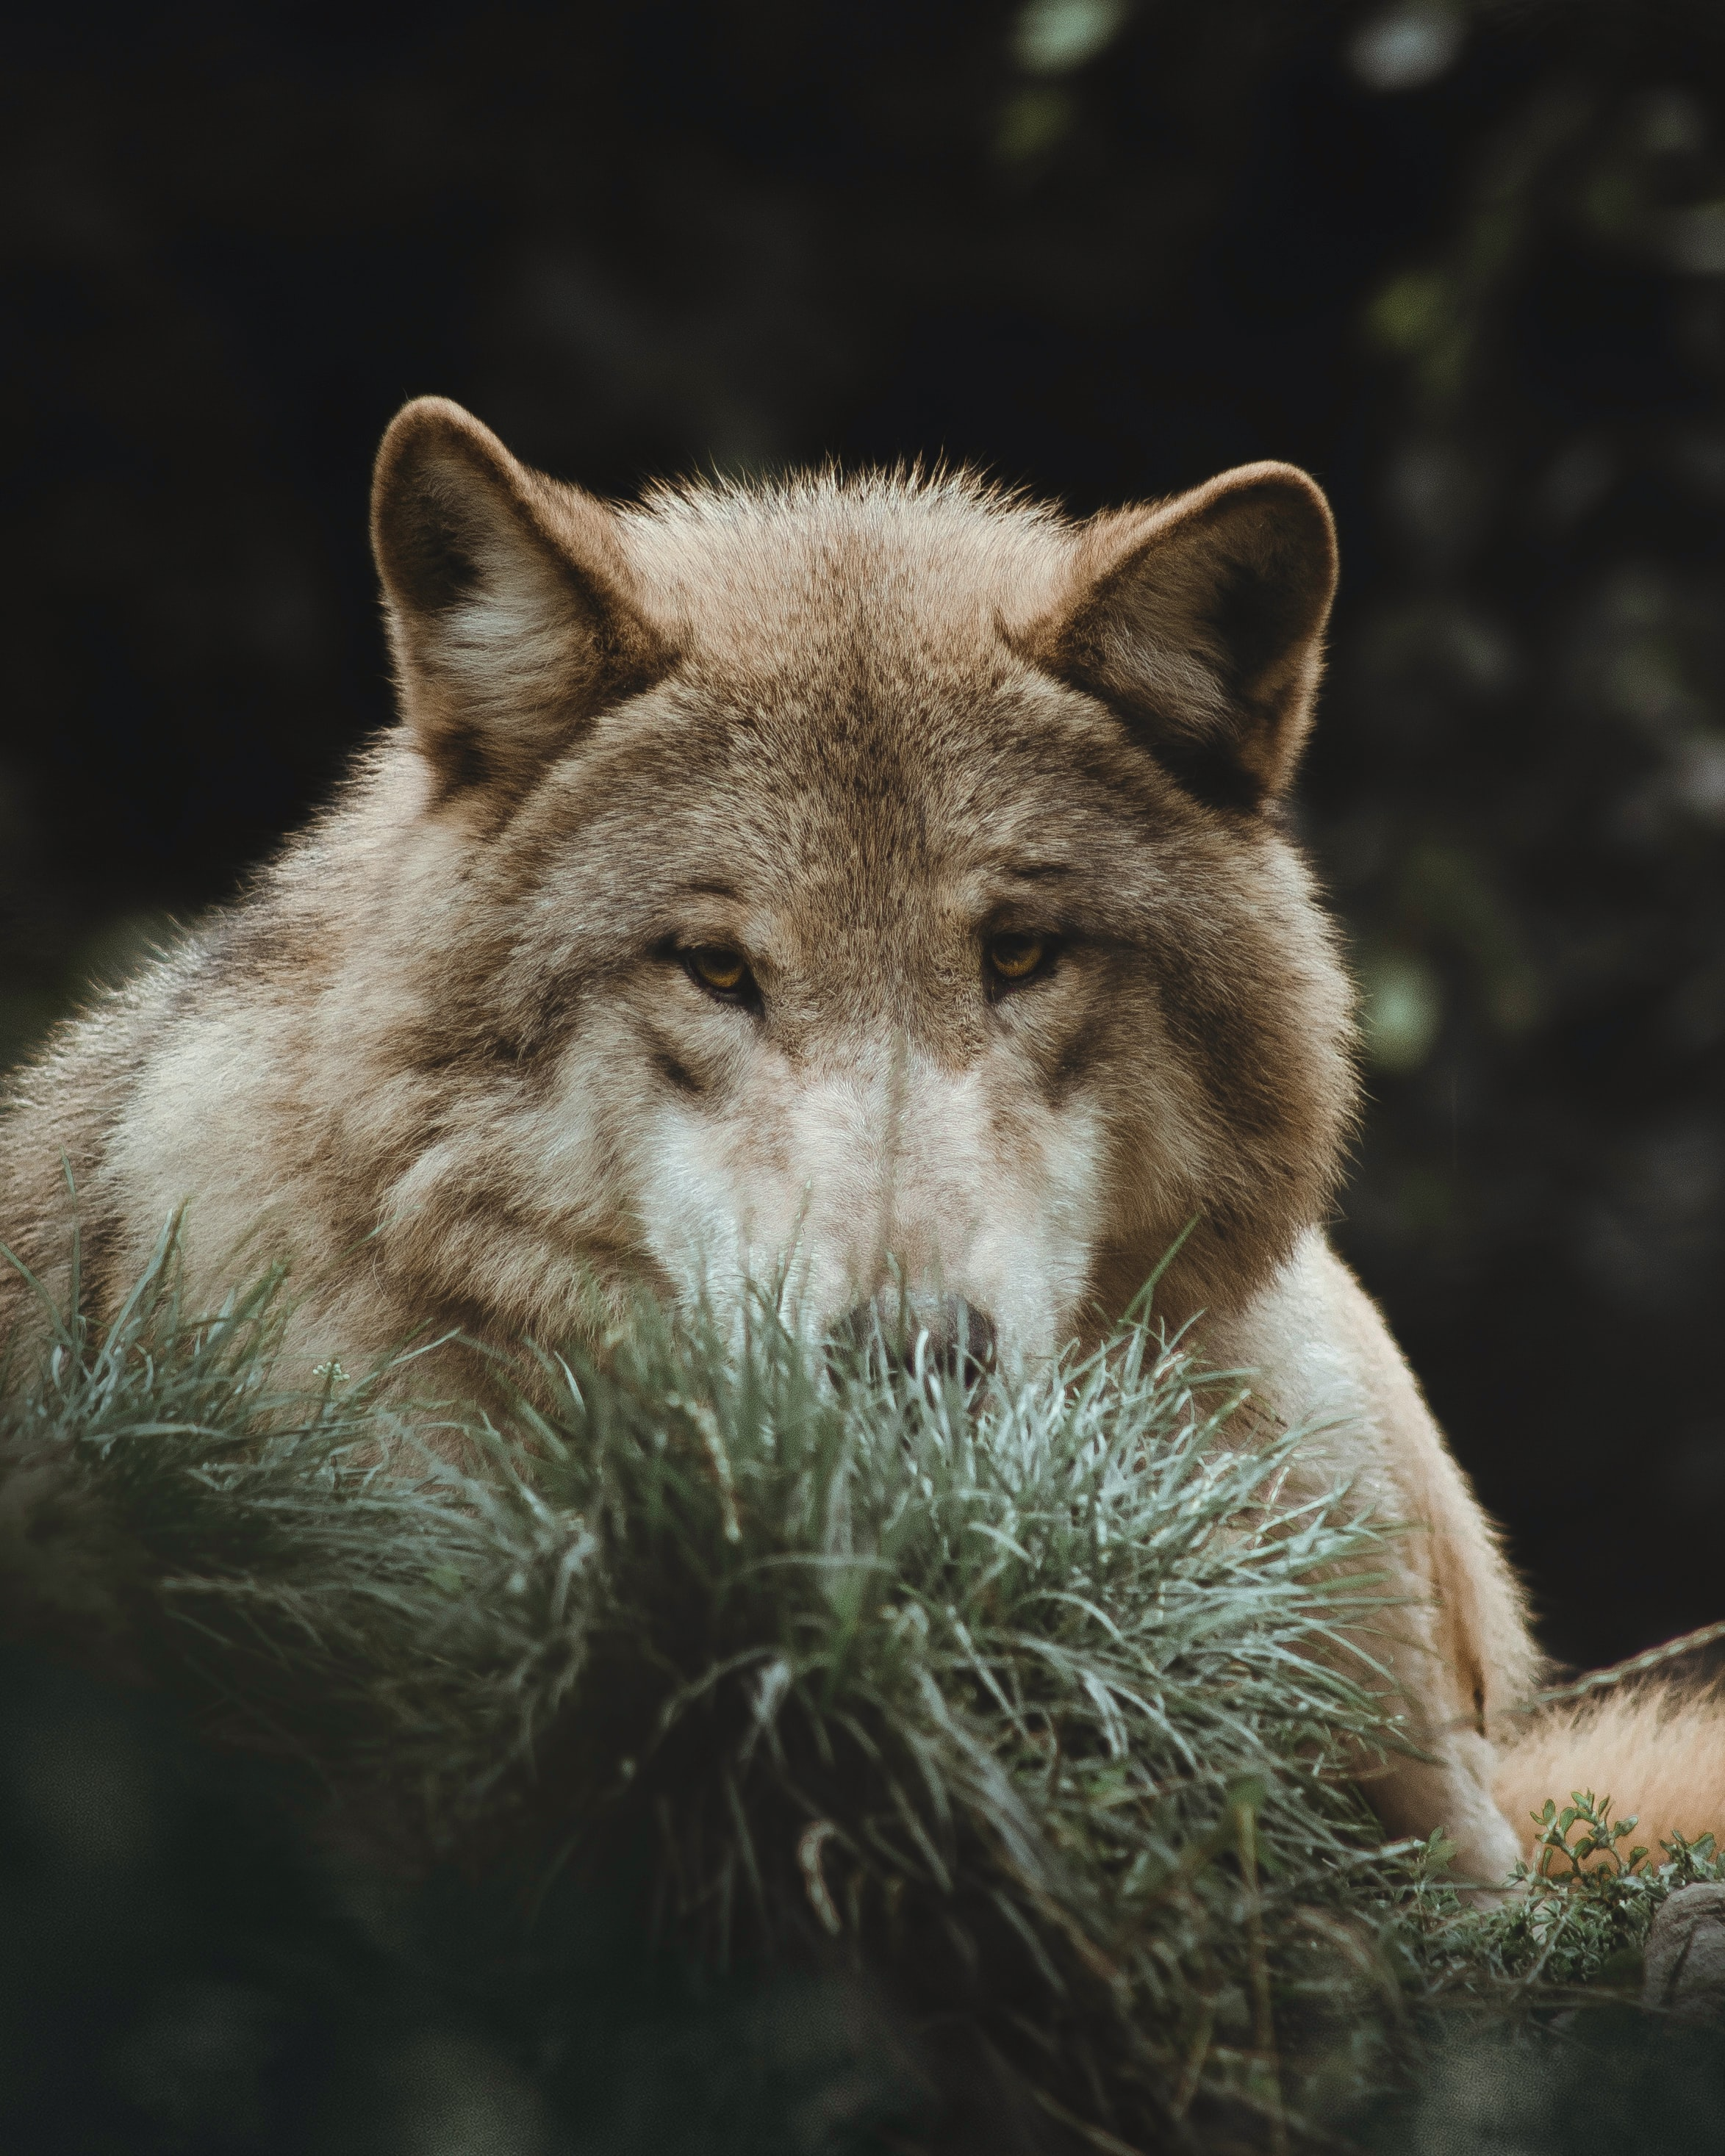 95276 download wallpaper Animals, Wolf, Grass, Predator, Animal screensavers and pictures for free